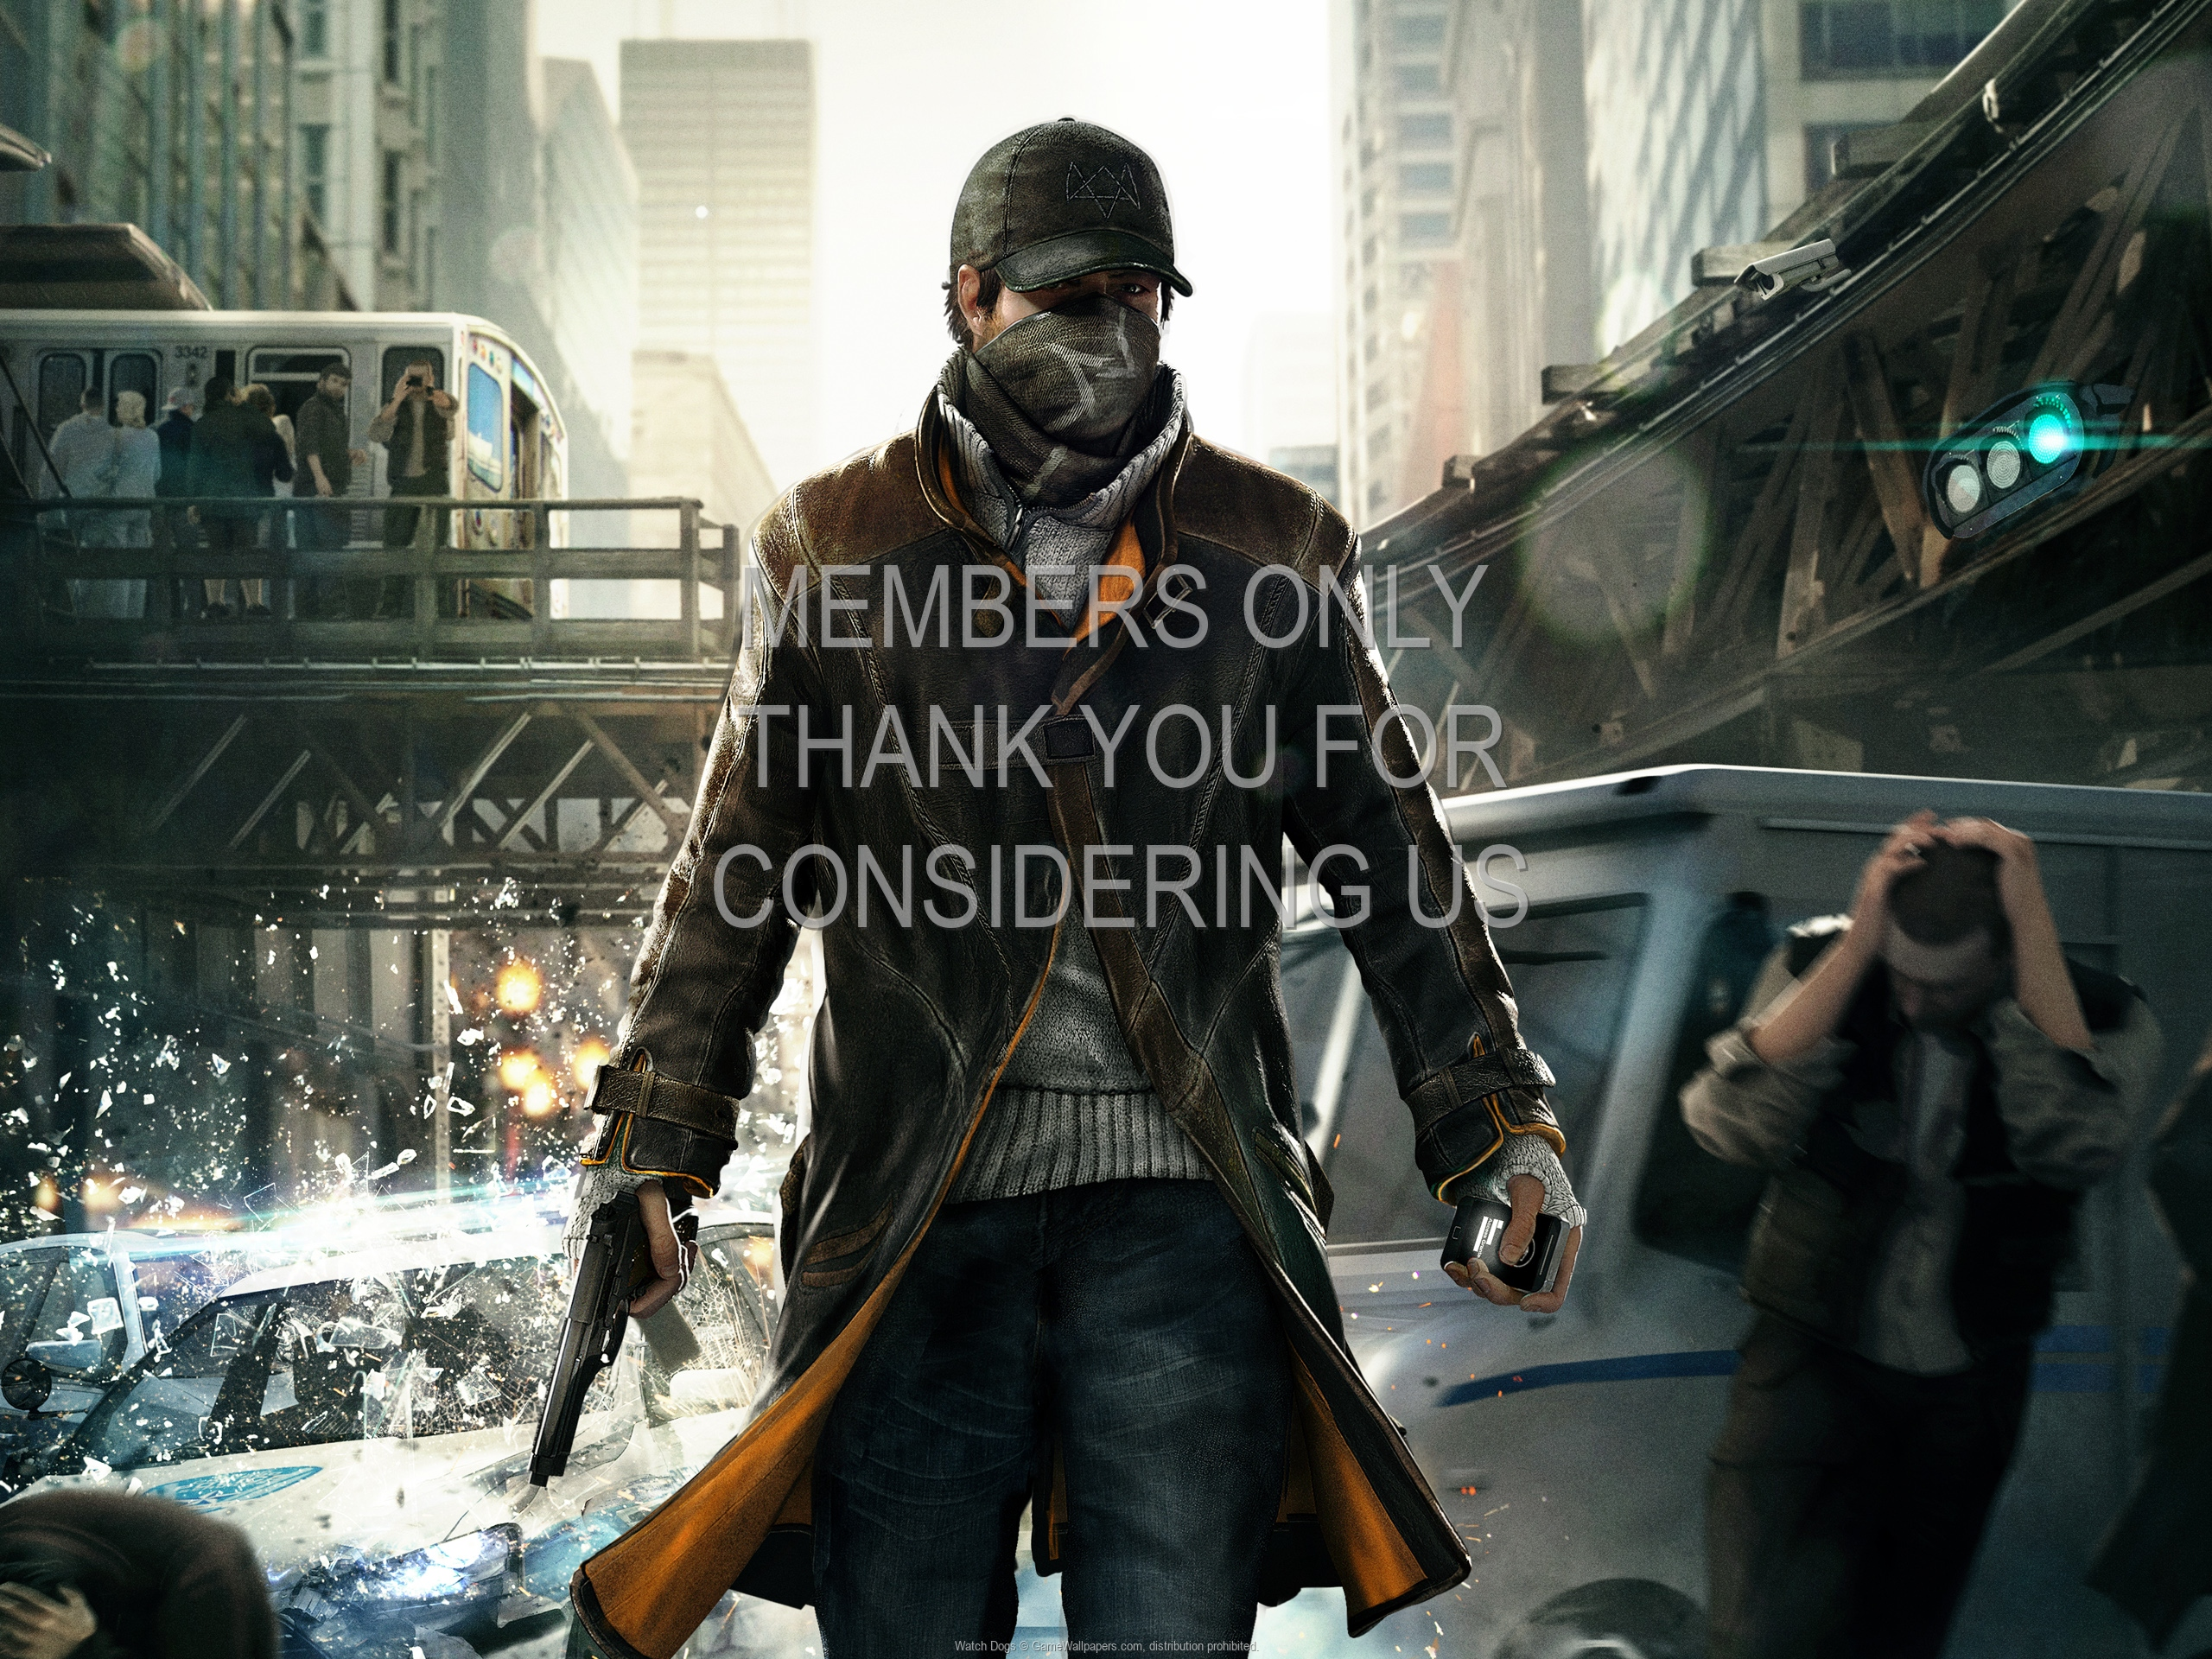 Watch Dogs 1920x1080 Mobile wallpaper or background 06